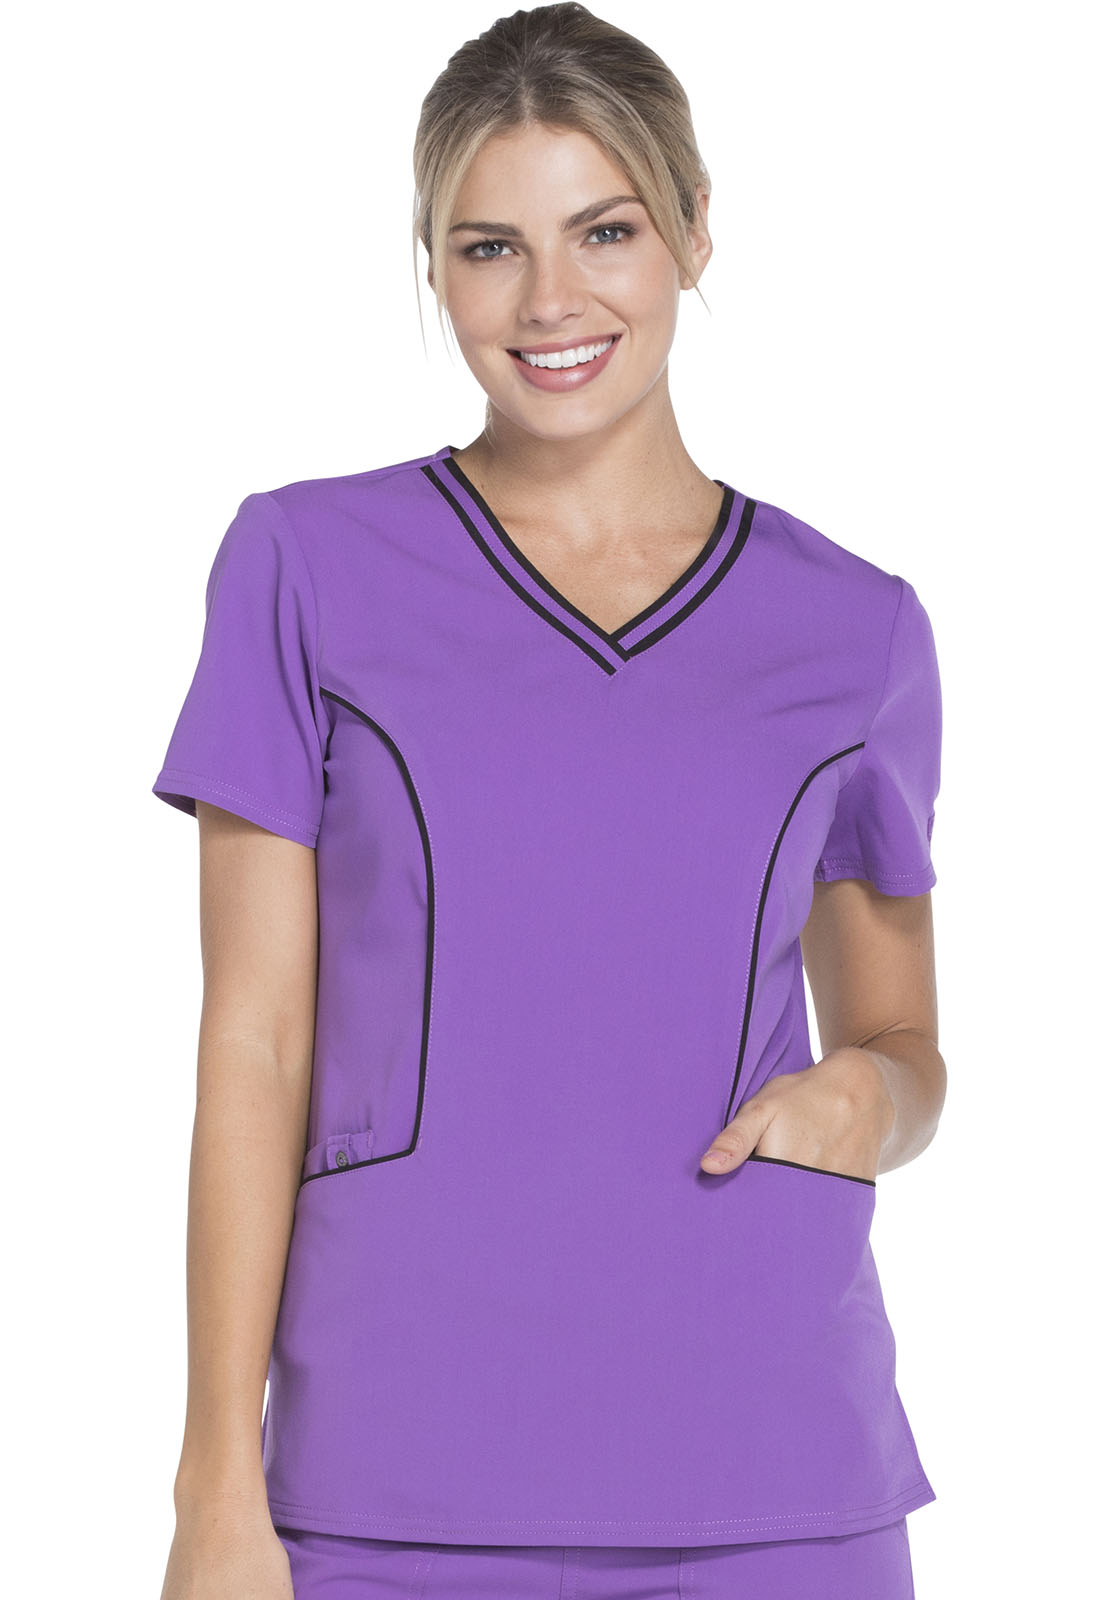 cc2a900f7ae Xtreme Stretch Contrast Piping V-Neck Top in Purplicious DK715-PLCS ...